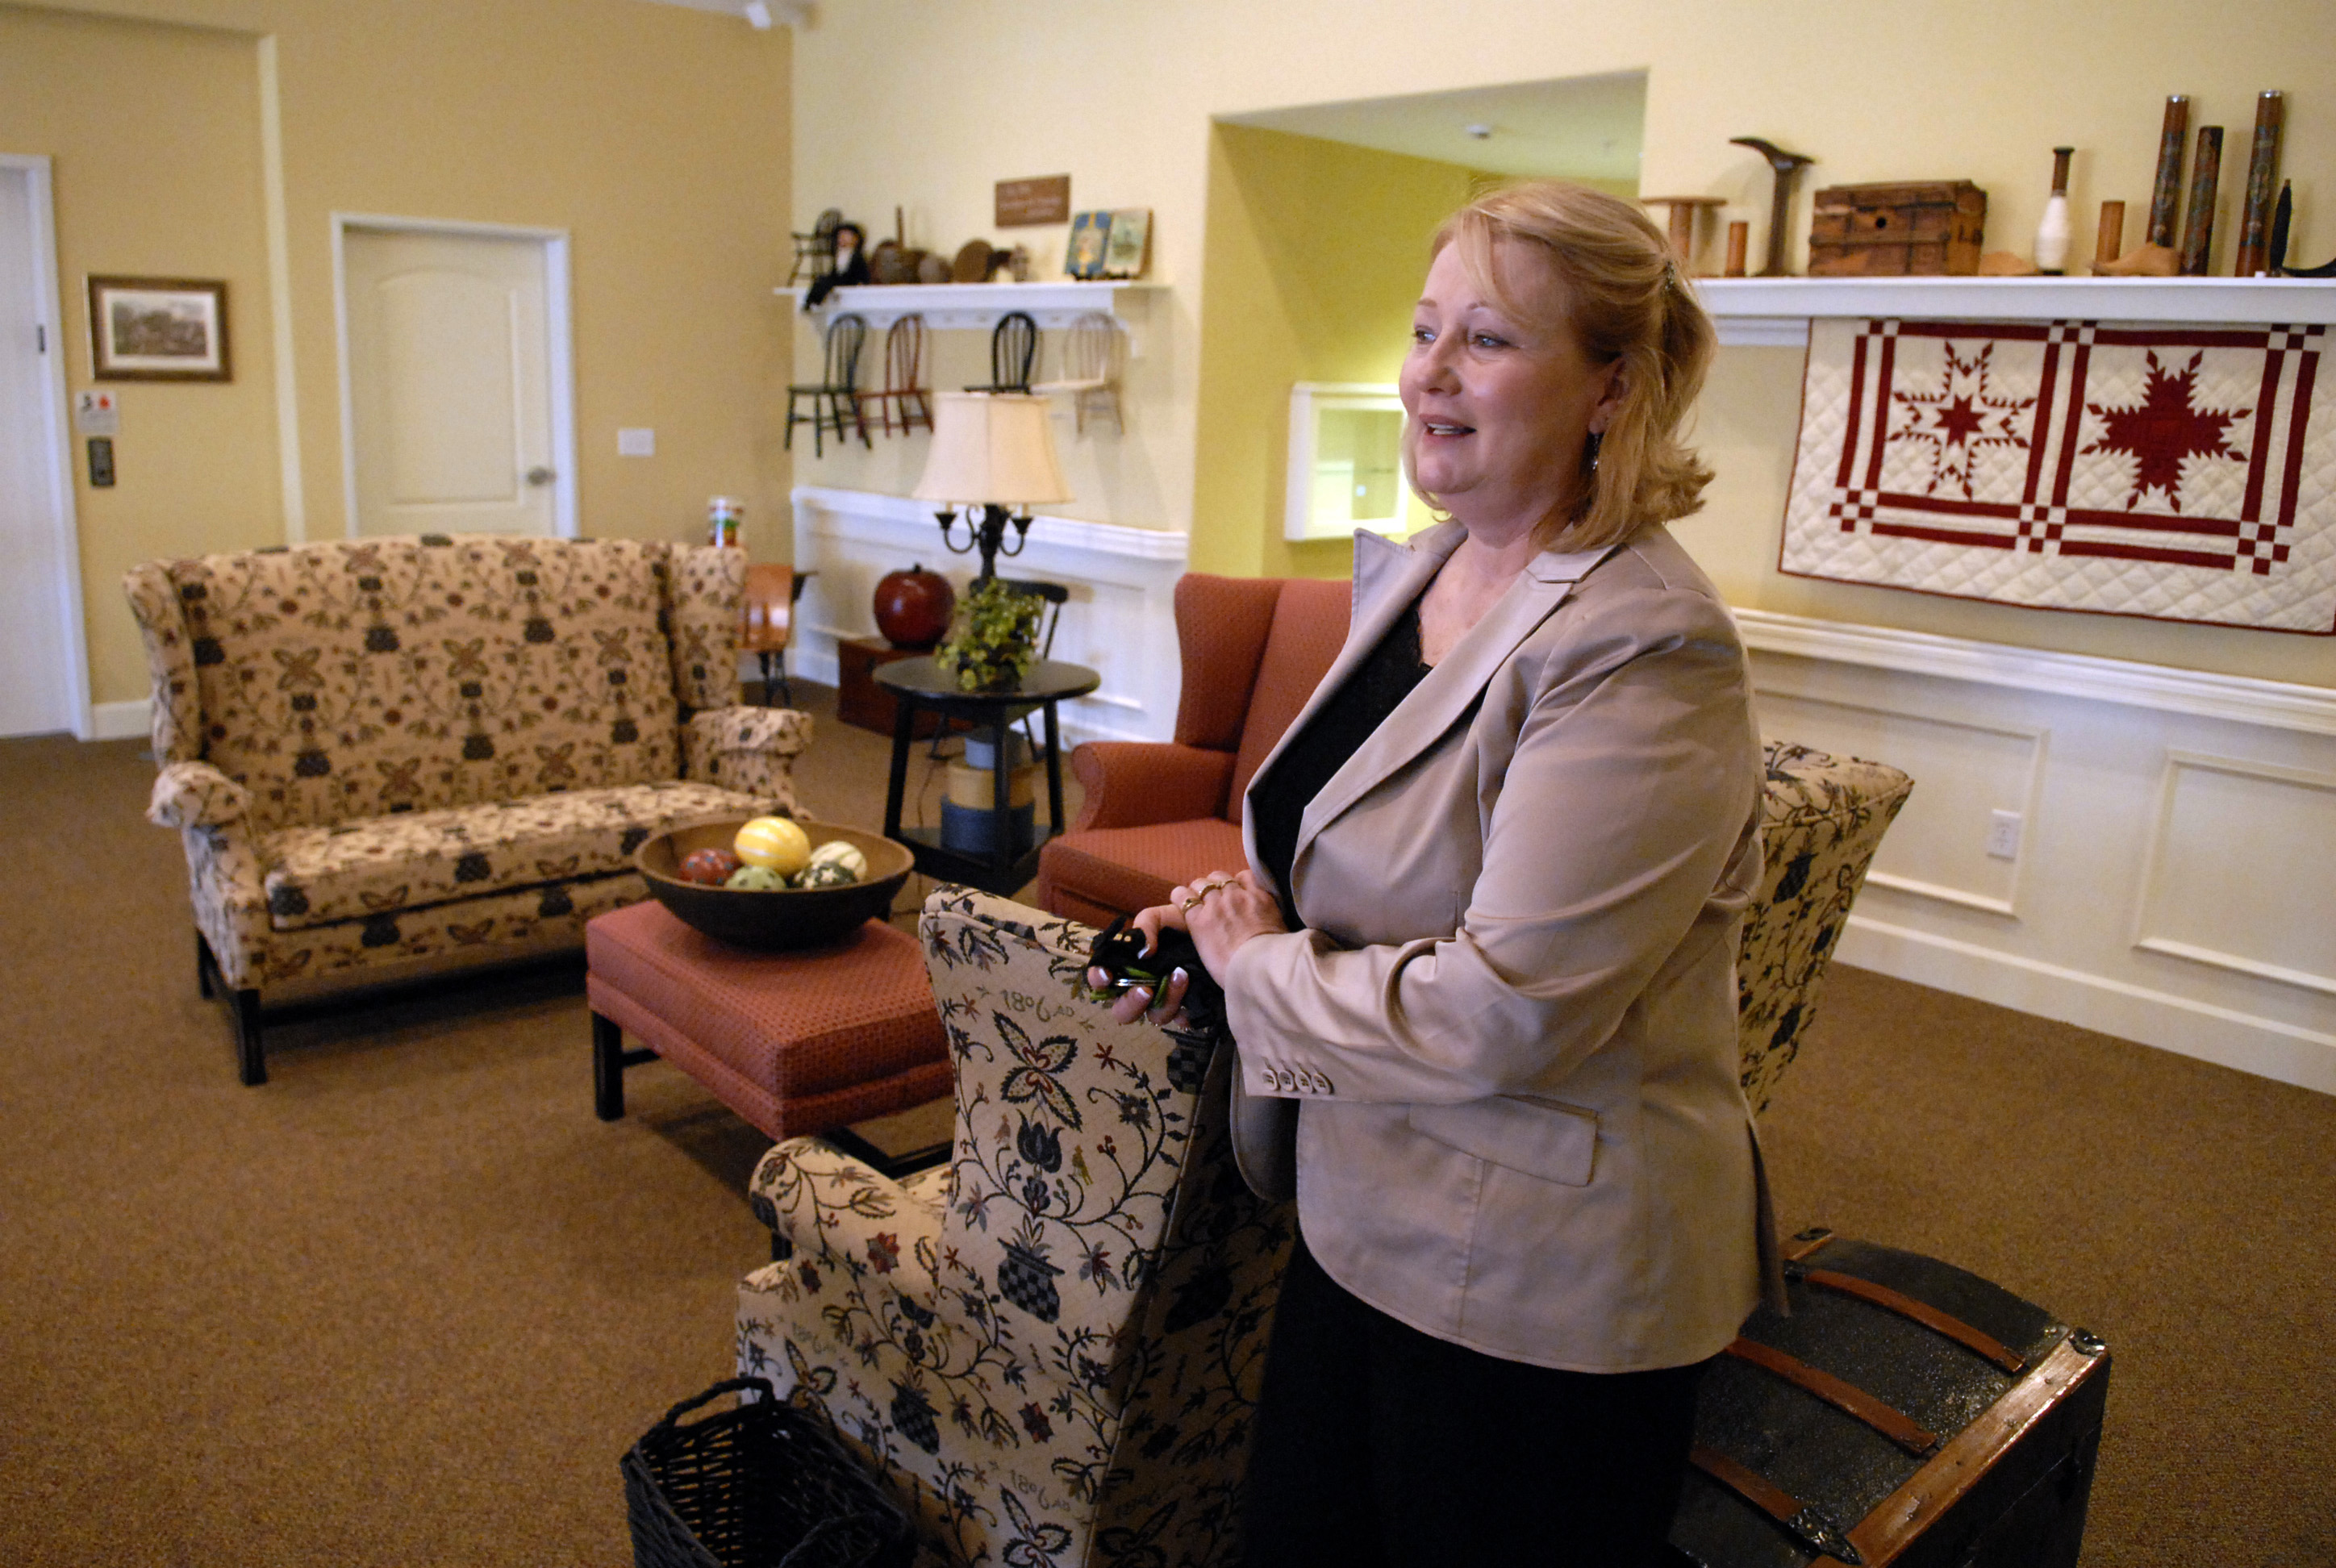 Home Combines Charm Mission The Spokesman Review